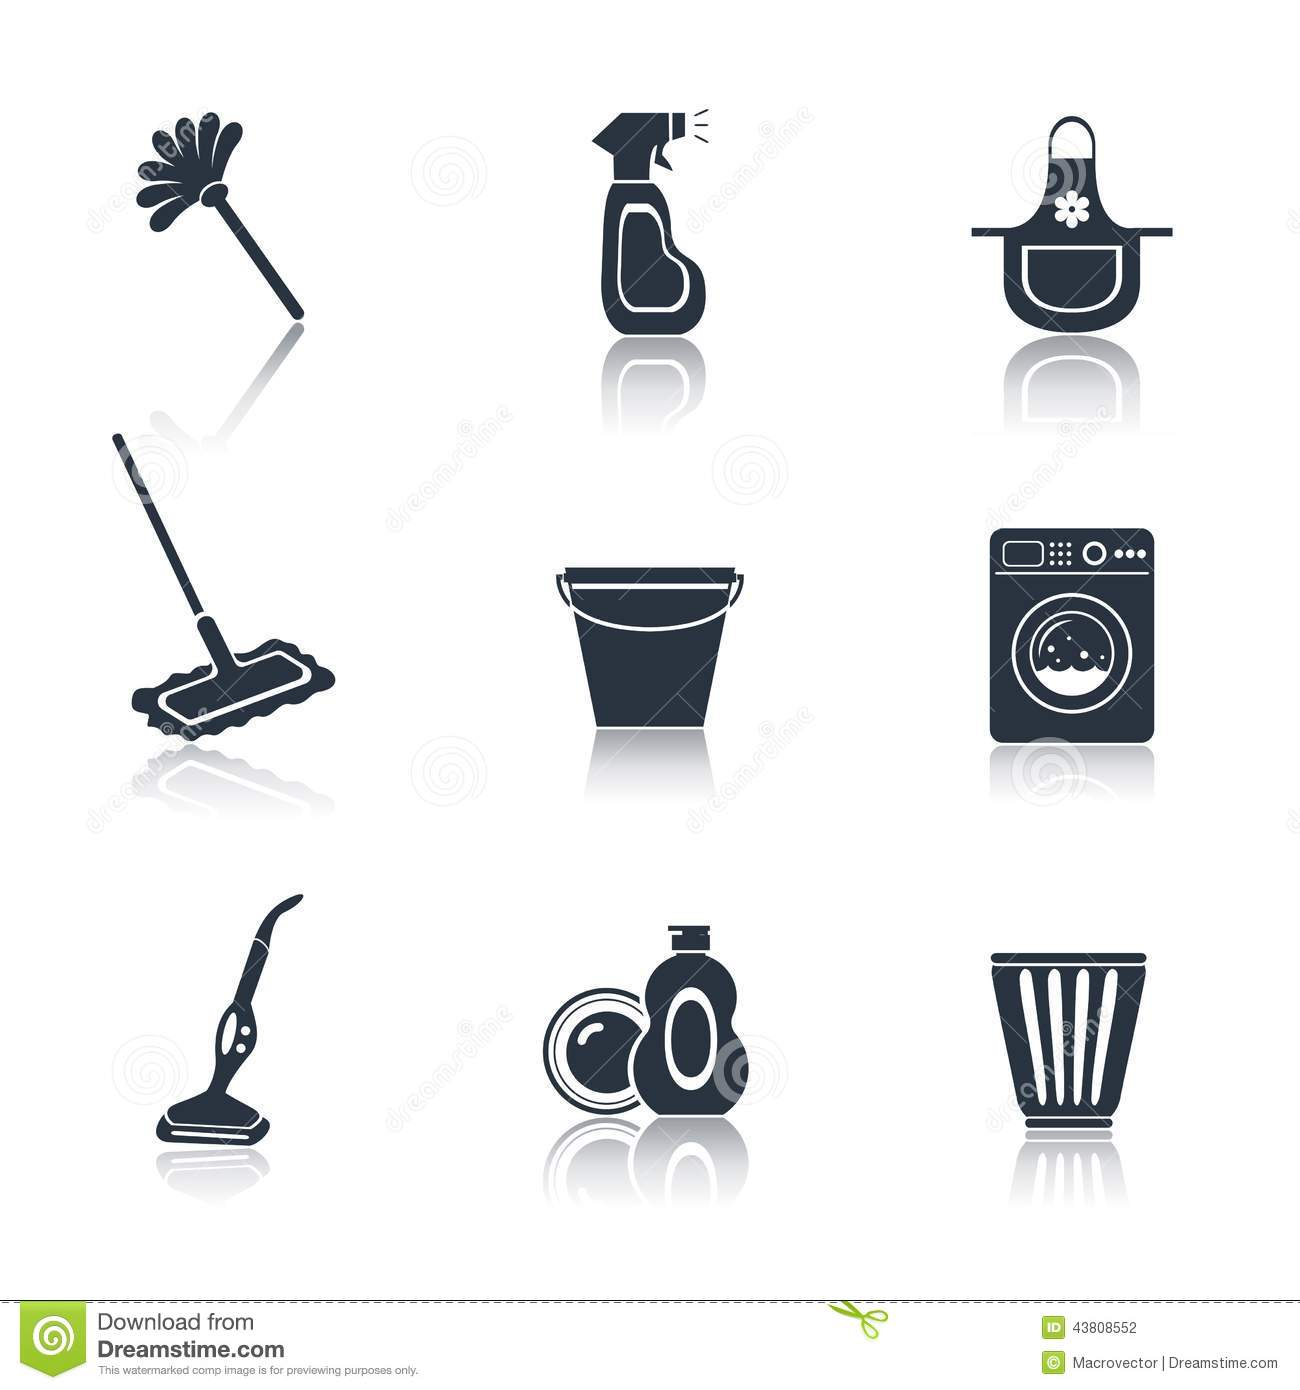 14 Cleaner Icon Black Images